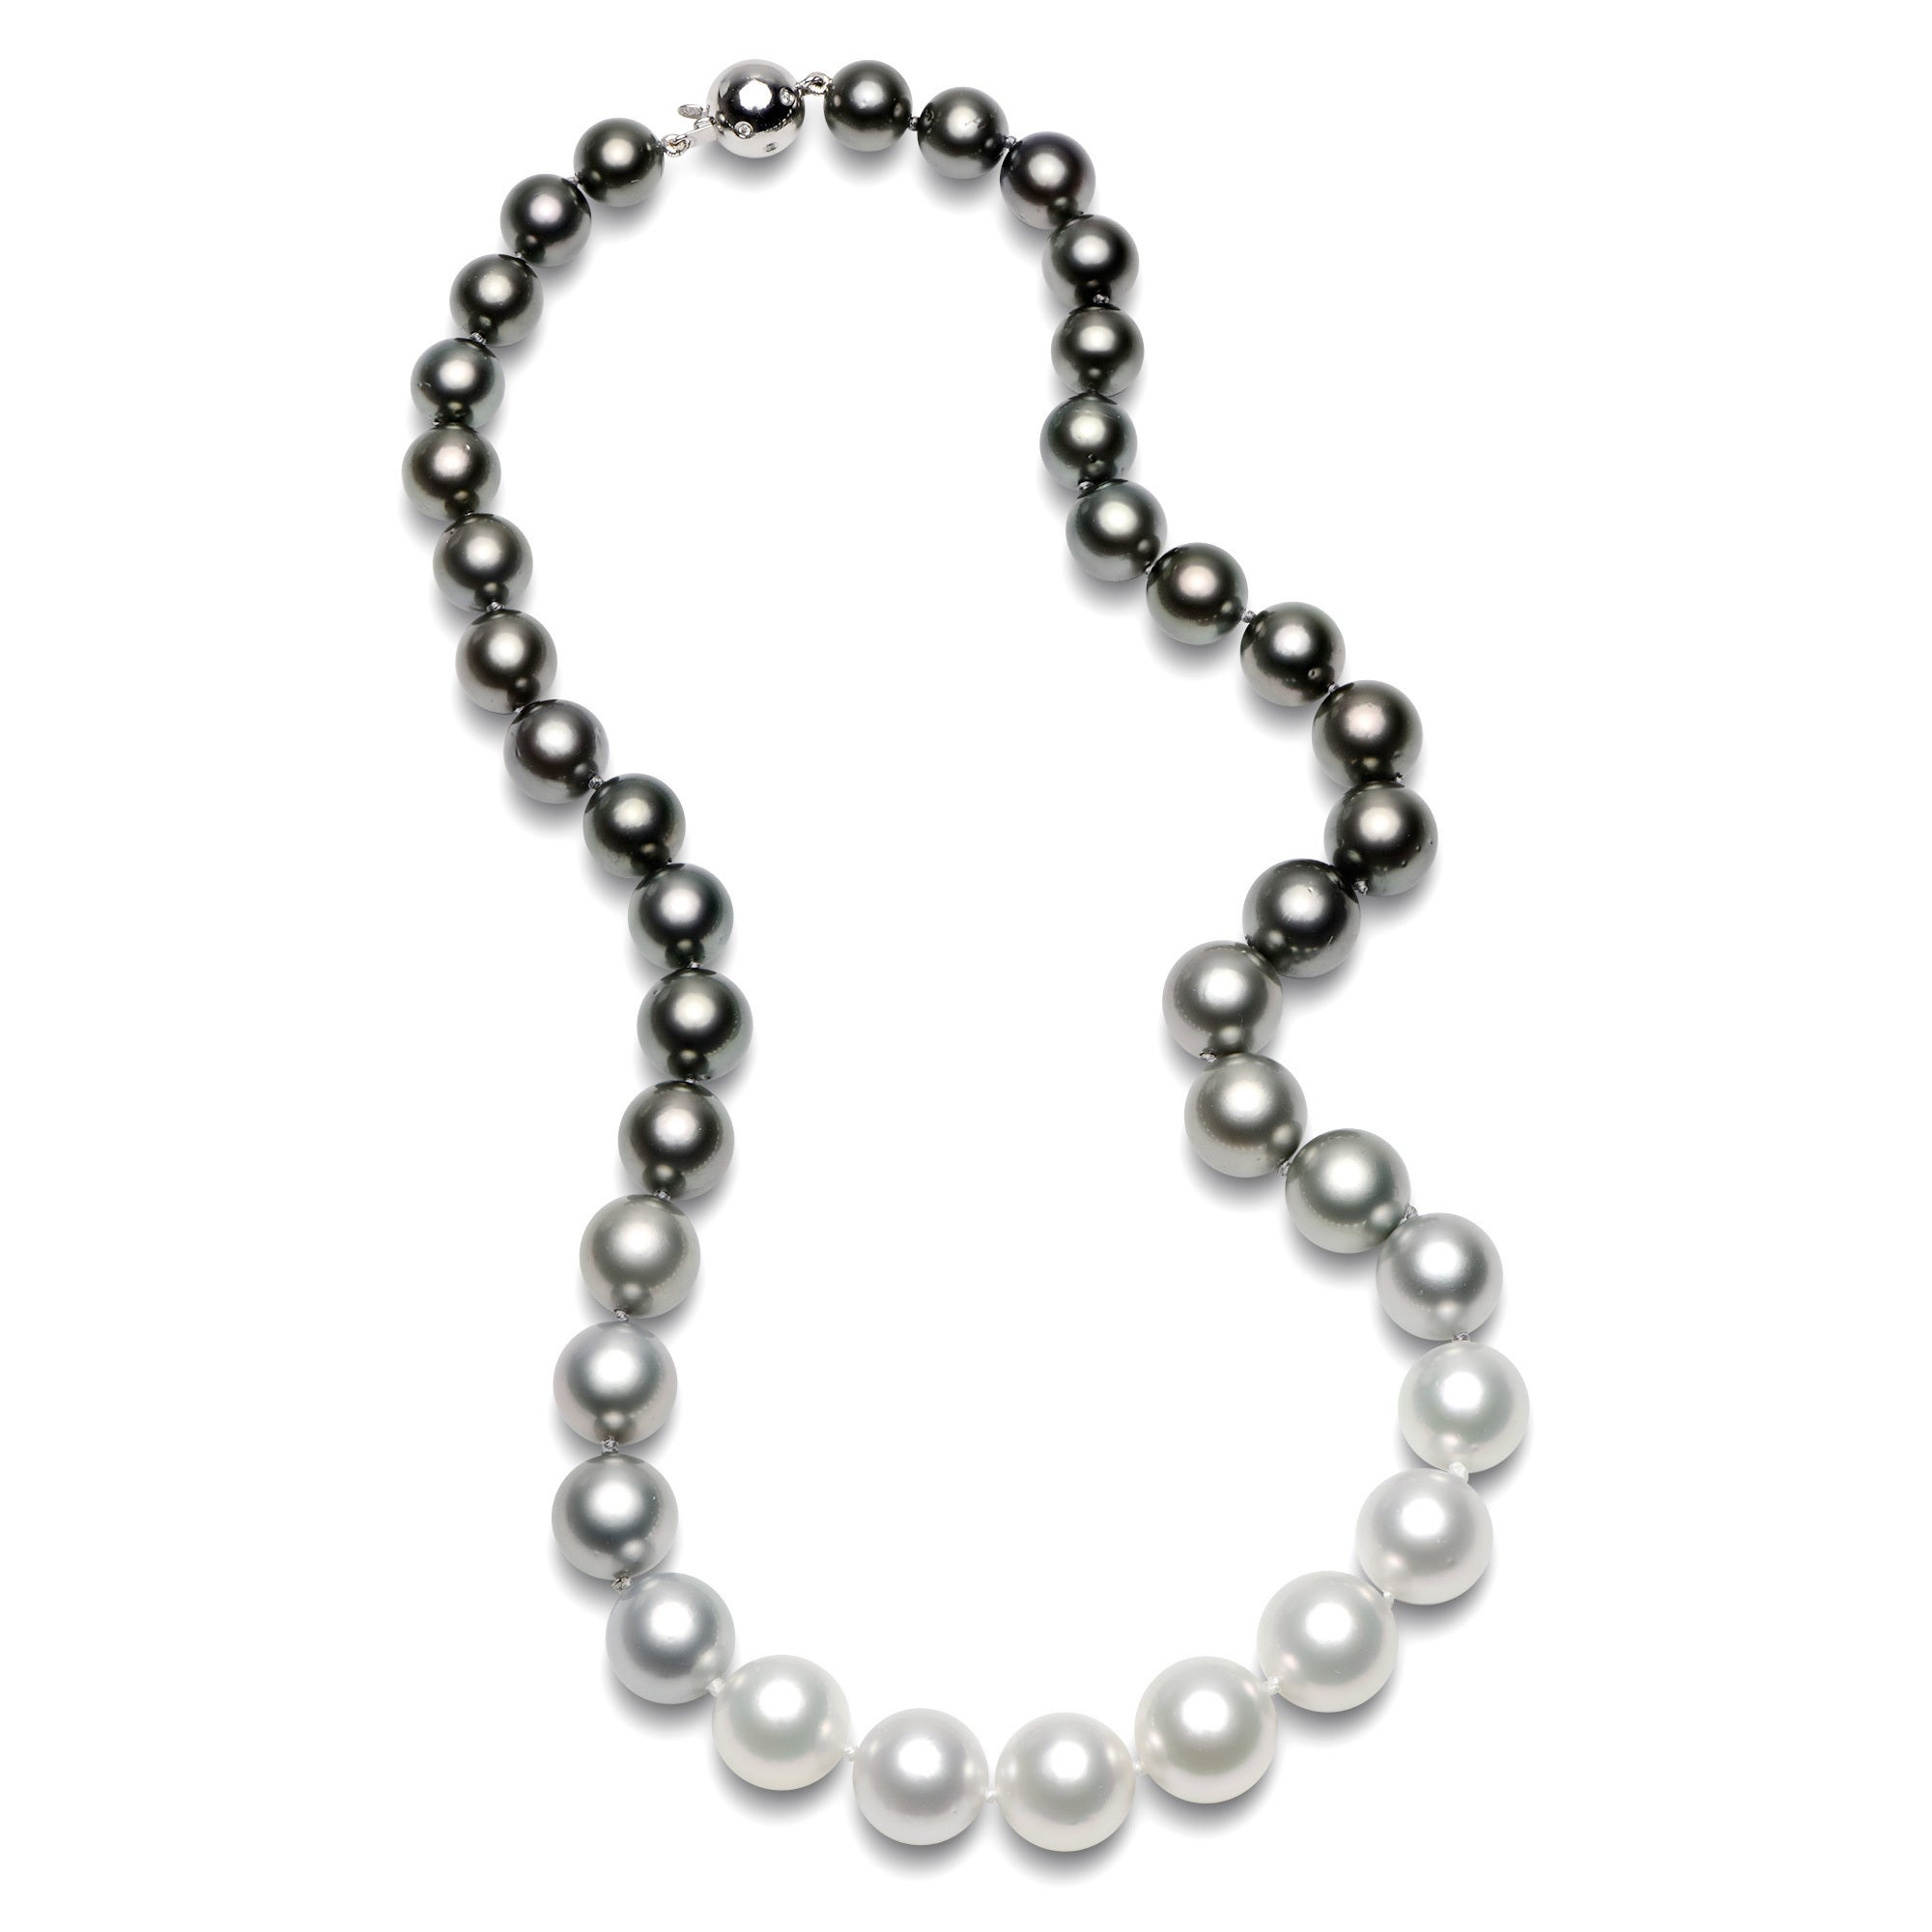 pearl necklace jewellery necklaces size meridian view alternate product os